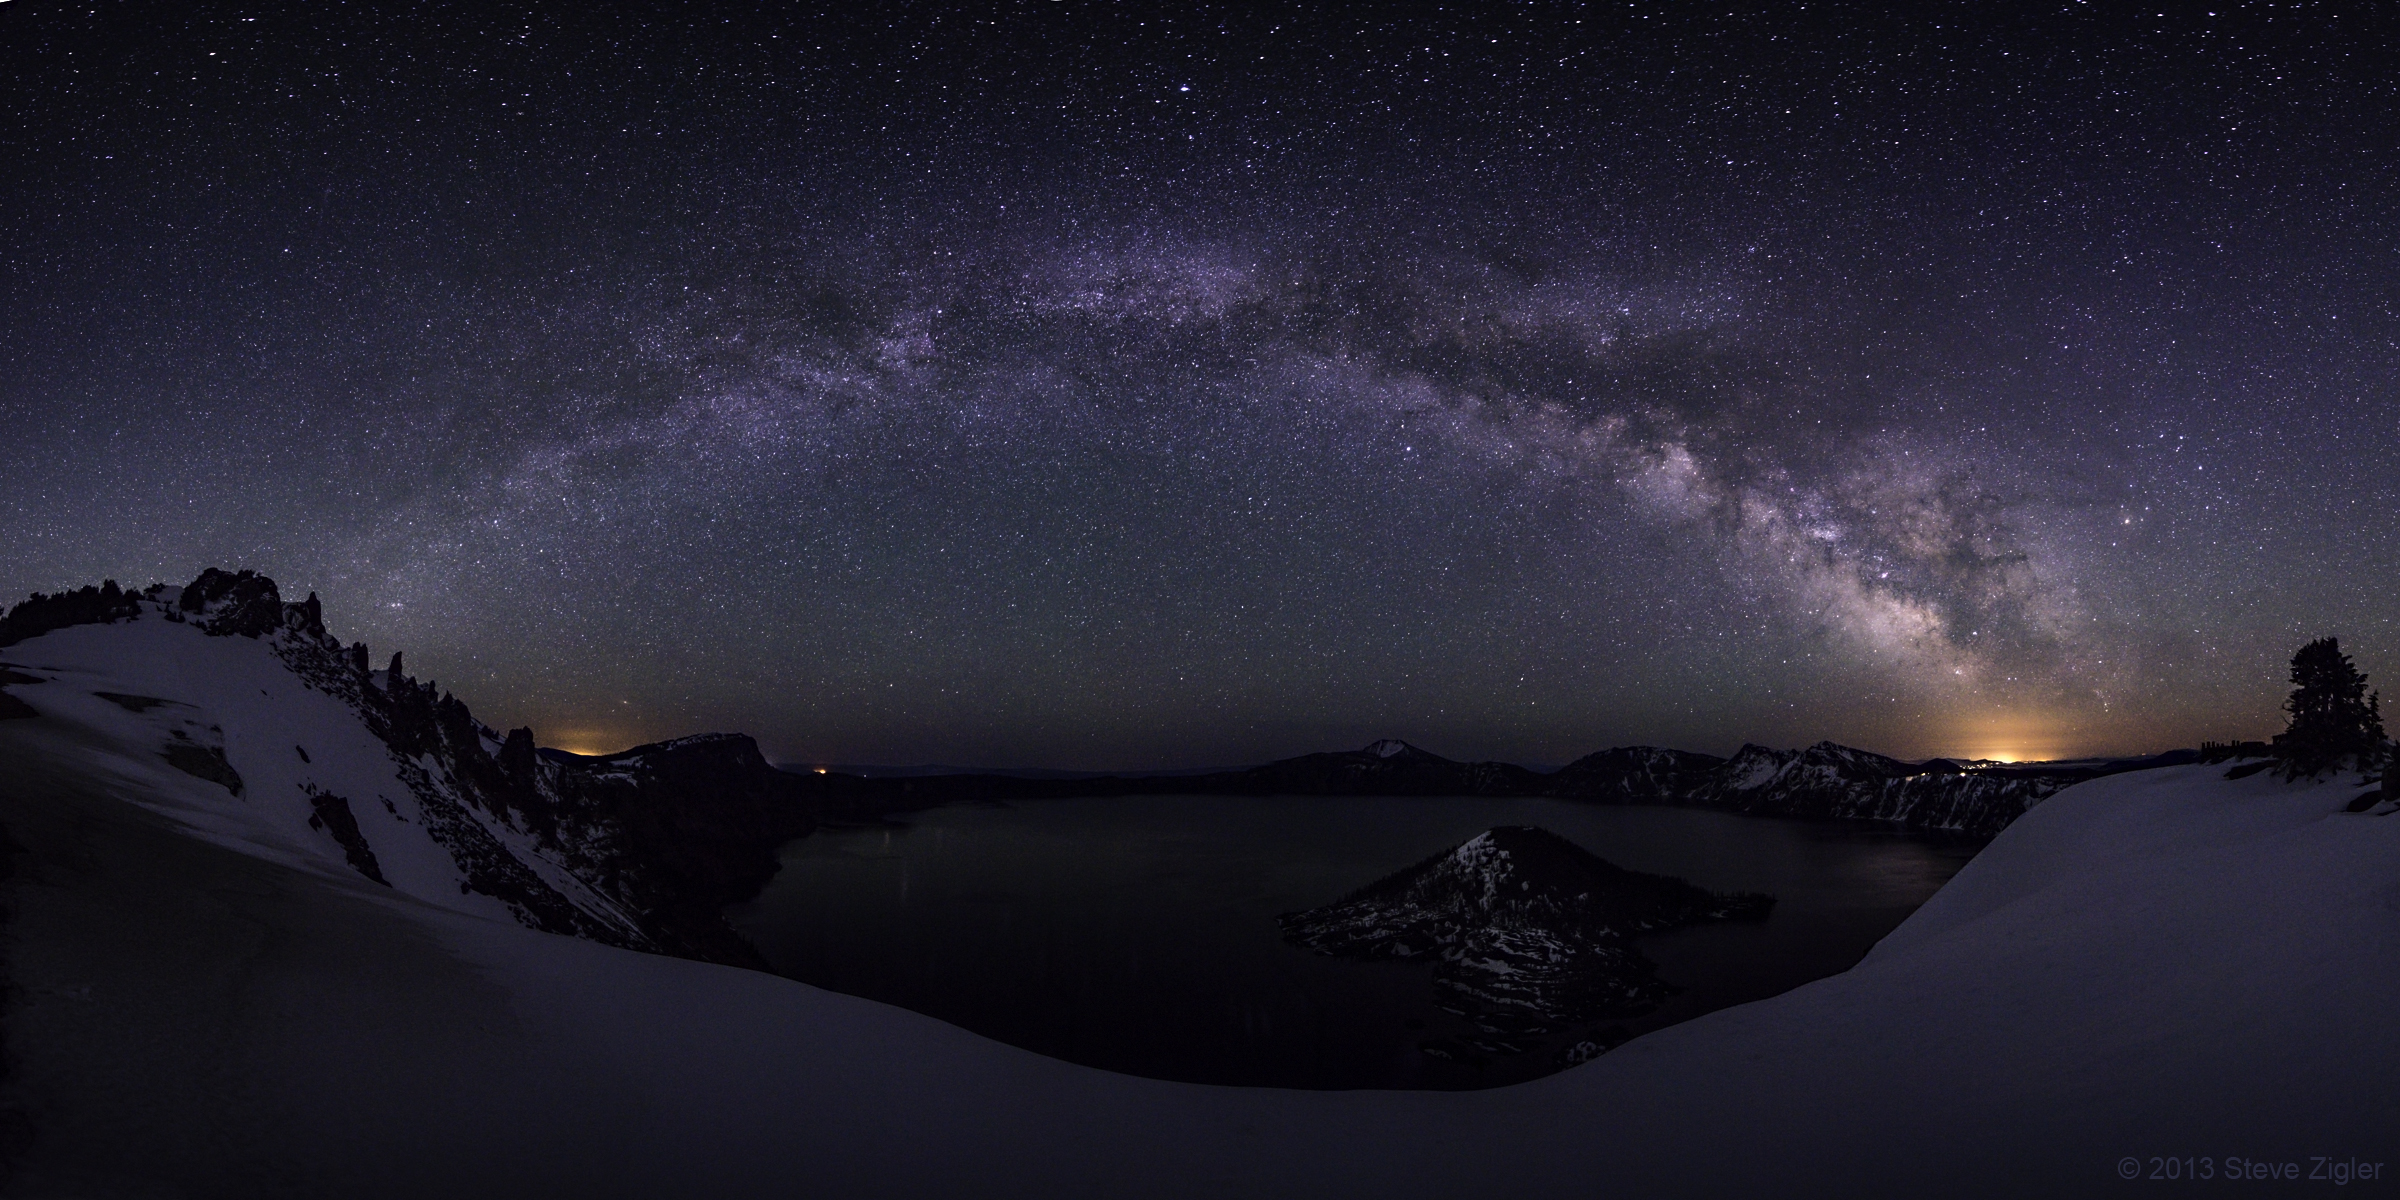 Milky Way Shines Over Crater Lake in Stunning Panorama (Photo)